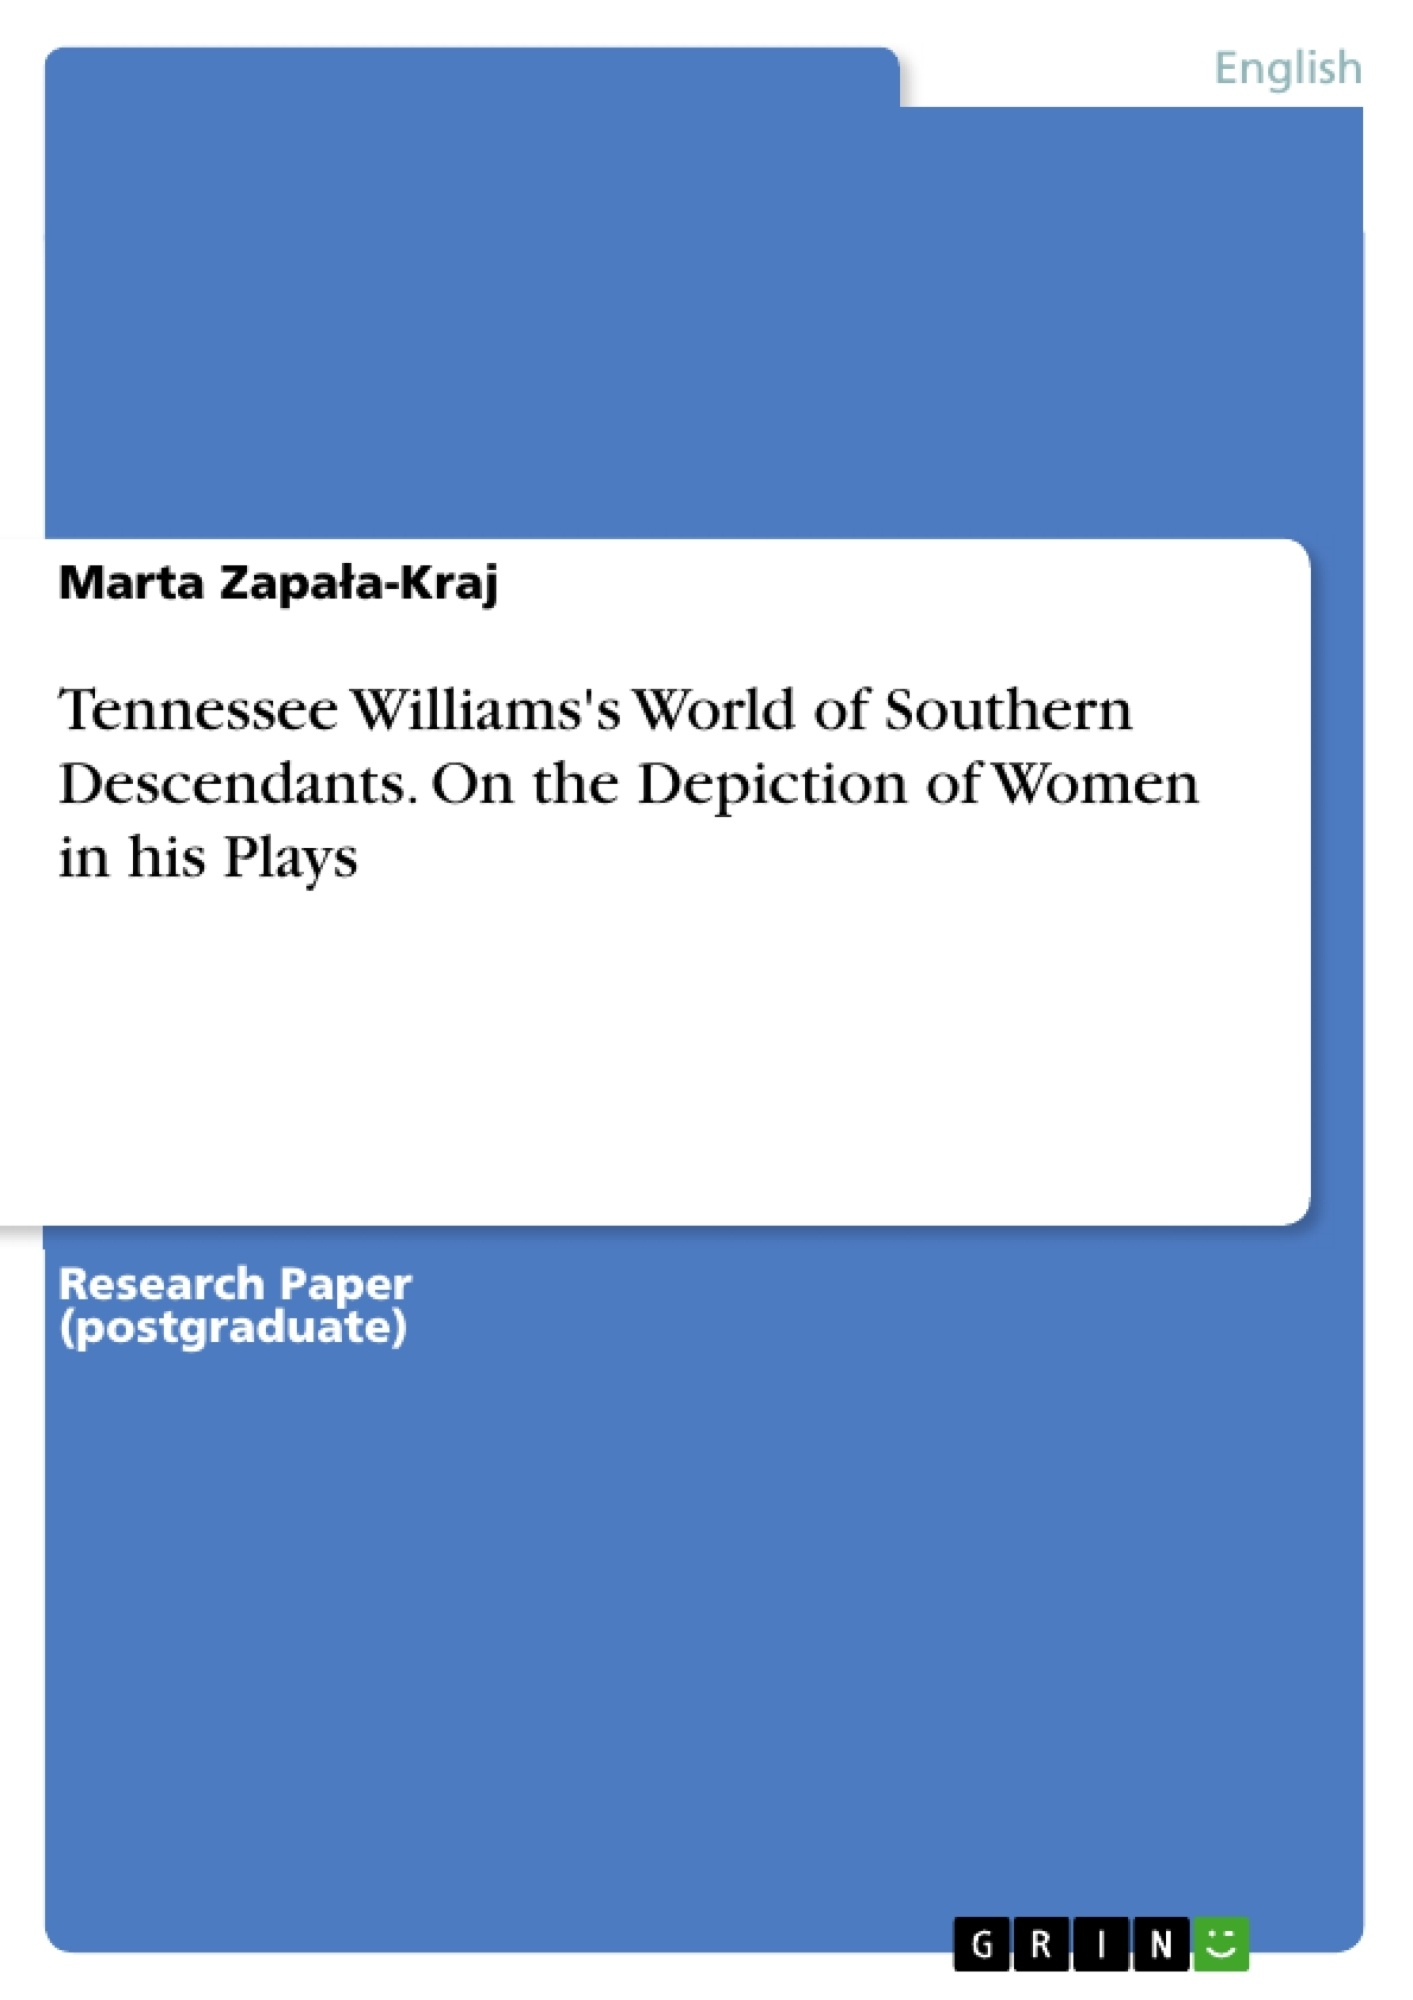 Title: Tennessee Williams's World of Southern Descendants. On the Depiction of Women in his Plays